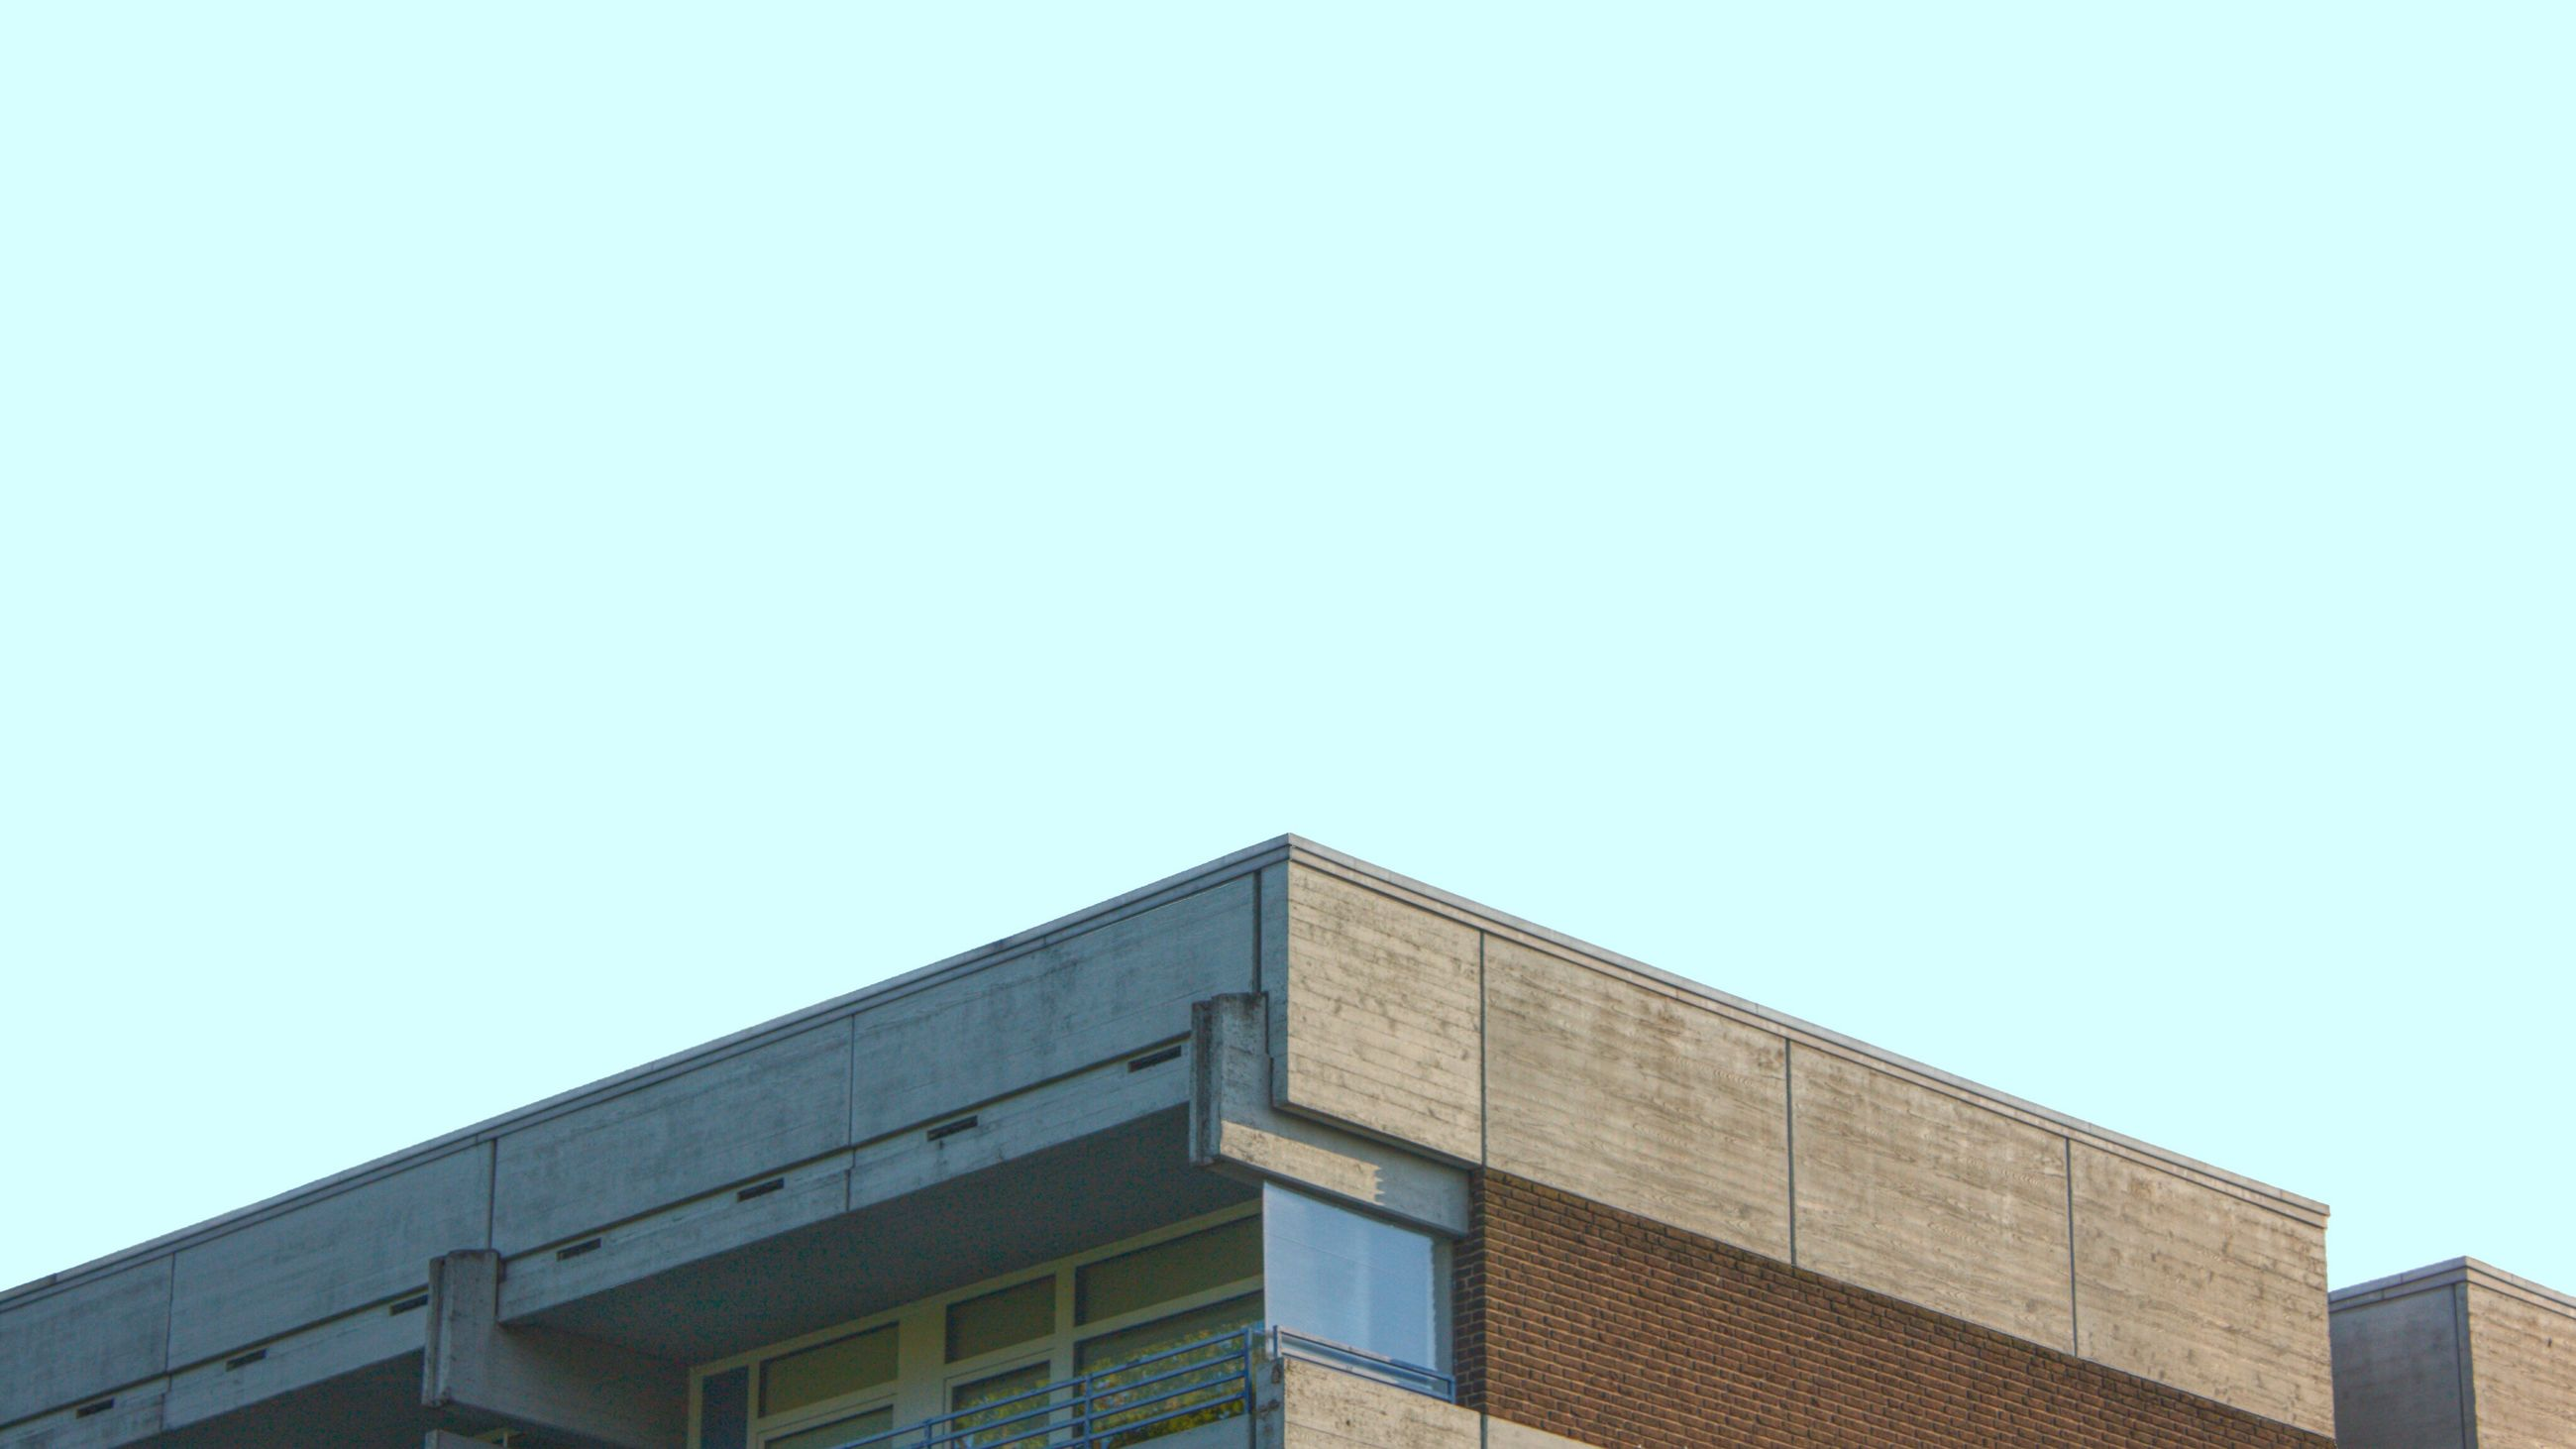 architecture, copy space, clear sky, built structure, building exterior, no people, low angle view, outdoors, day, blue sky